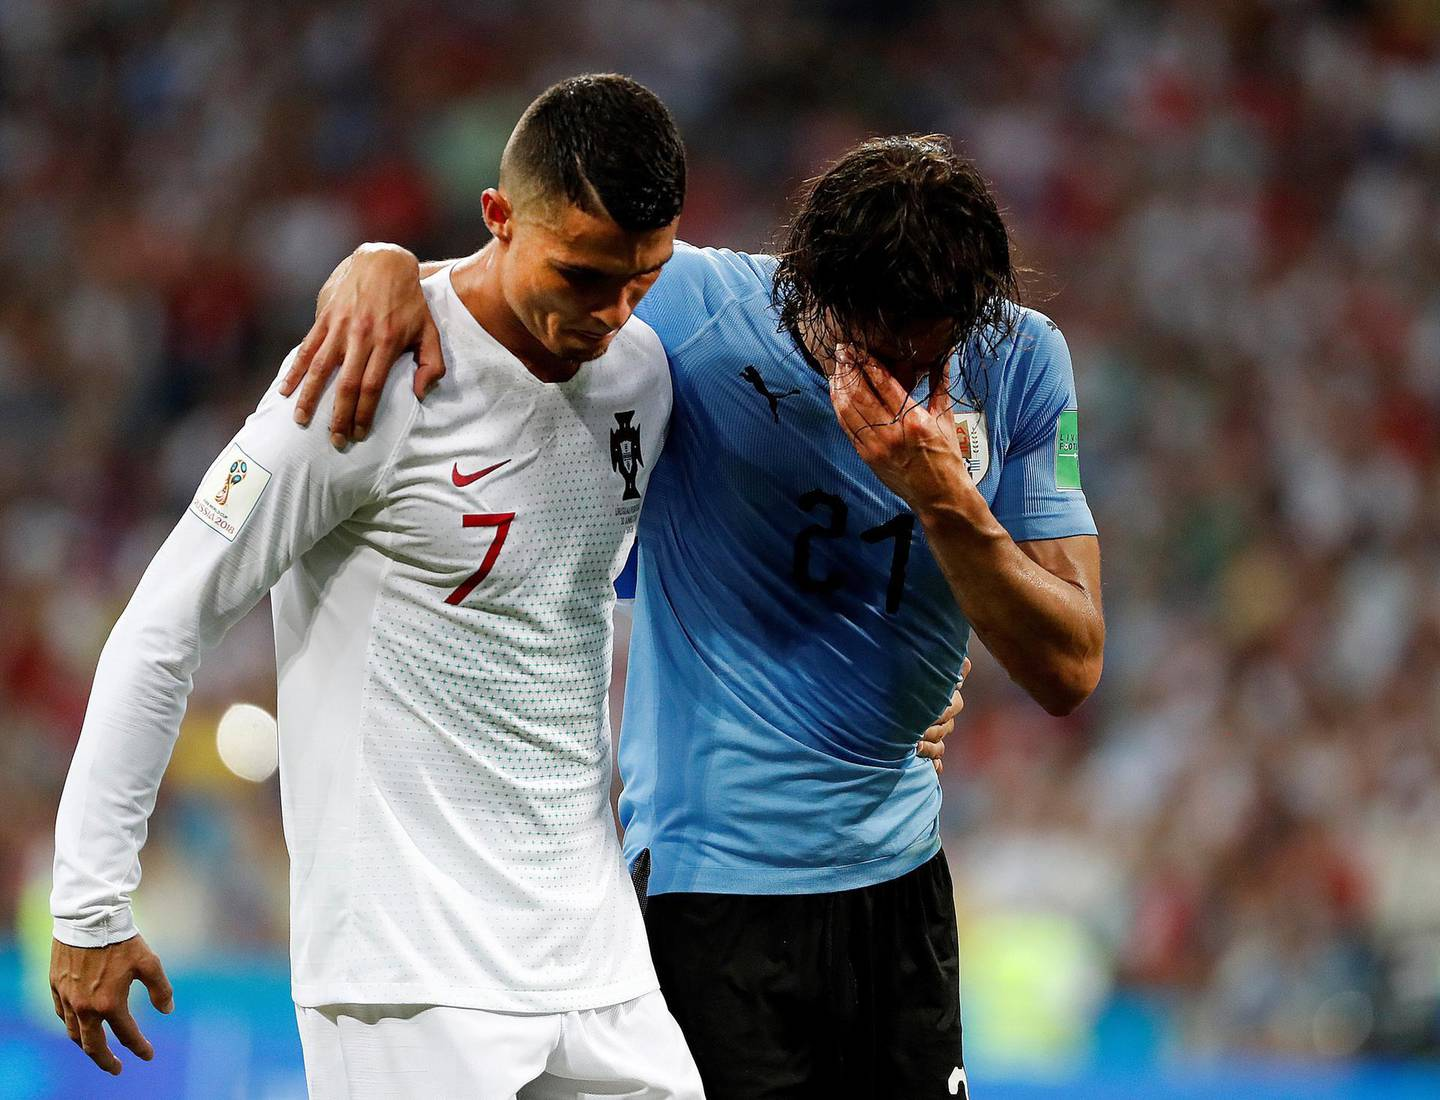 epaselect epa06853381 Portugal's Cristiano Ronaldo (L) helps Uruguay's Edinson Cavani during the FIFA World Cup 2018 round of 16 soccer match between Uruguay and Portugal in Sochi, Russia, 30 June 2018.  (RESTRICTIONS APPLY: Editorial Use Only, not used in association with any commercial entity - Images must not be used in any form of alert service or push service of any kind including via mobile alert services, downloads to mobile devices or MMS messaging - Images must appear as still images and must not emulate match action video footage - No alteration is made to, and no text or image is superimposed over, any published image which: (a) intentionally obscures or removes a sponsor identification image; or (b) adds or overlays the commercial identification of any third party which is not officially associated with the FIFA World Cup)  EPA/JUAN HERRERO EDITORIAL USE ONLY  EDITORIAL USE ONLY